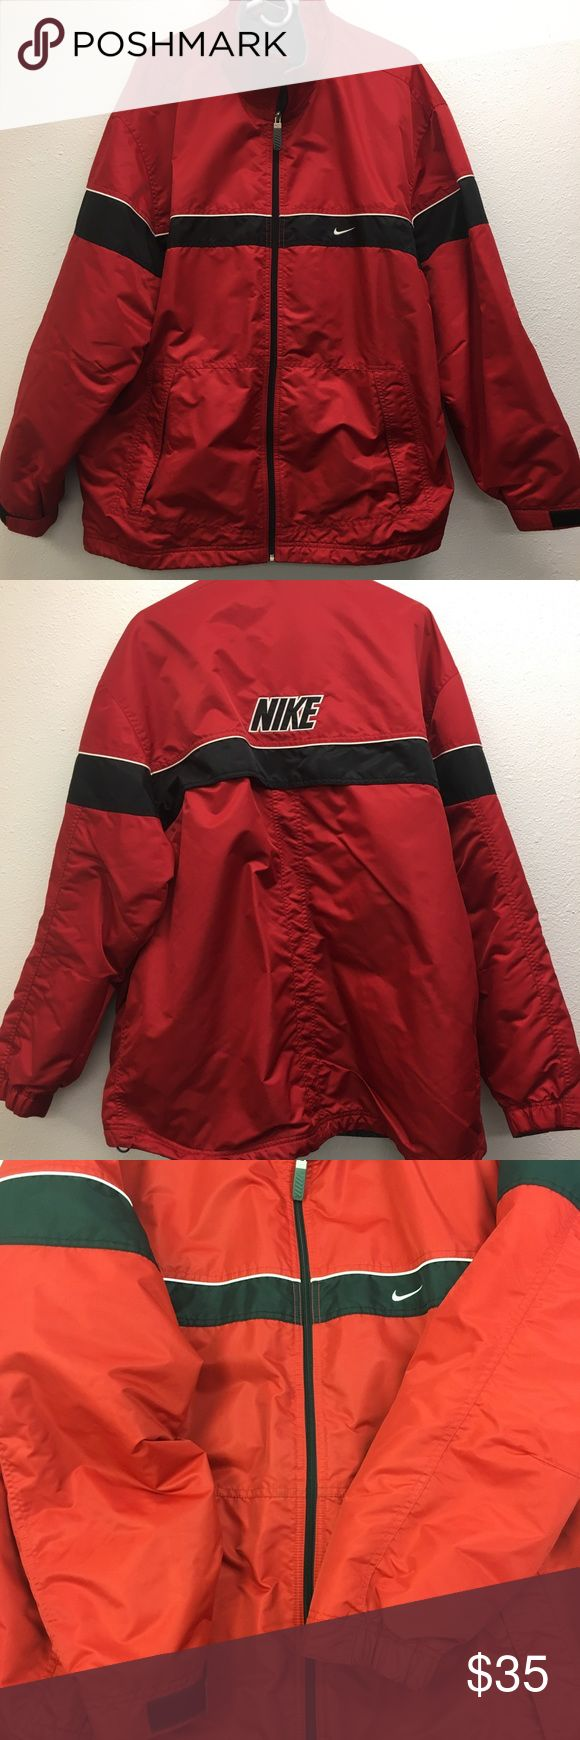 Men's XL Red Nike Coat. Very warm pre-owned jacket that is in great condition. Rarely worn. This coat has an inside pocket, 2 external pockets to keep your hand warm when need be. There is a drawstring at the waist and a gray warm lining. Nike Jackets & Coats Ski & Snowboard